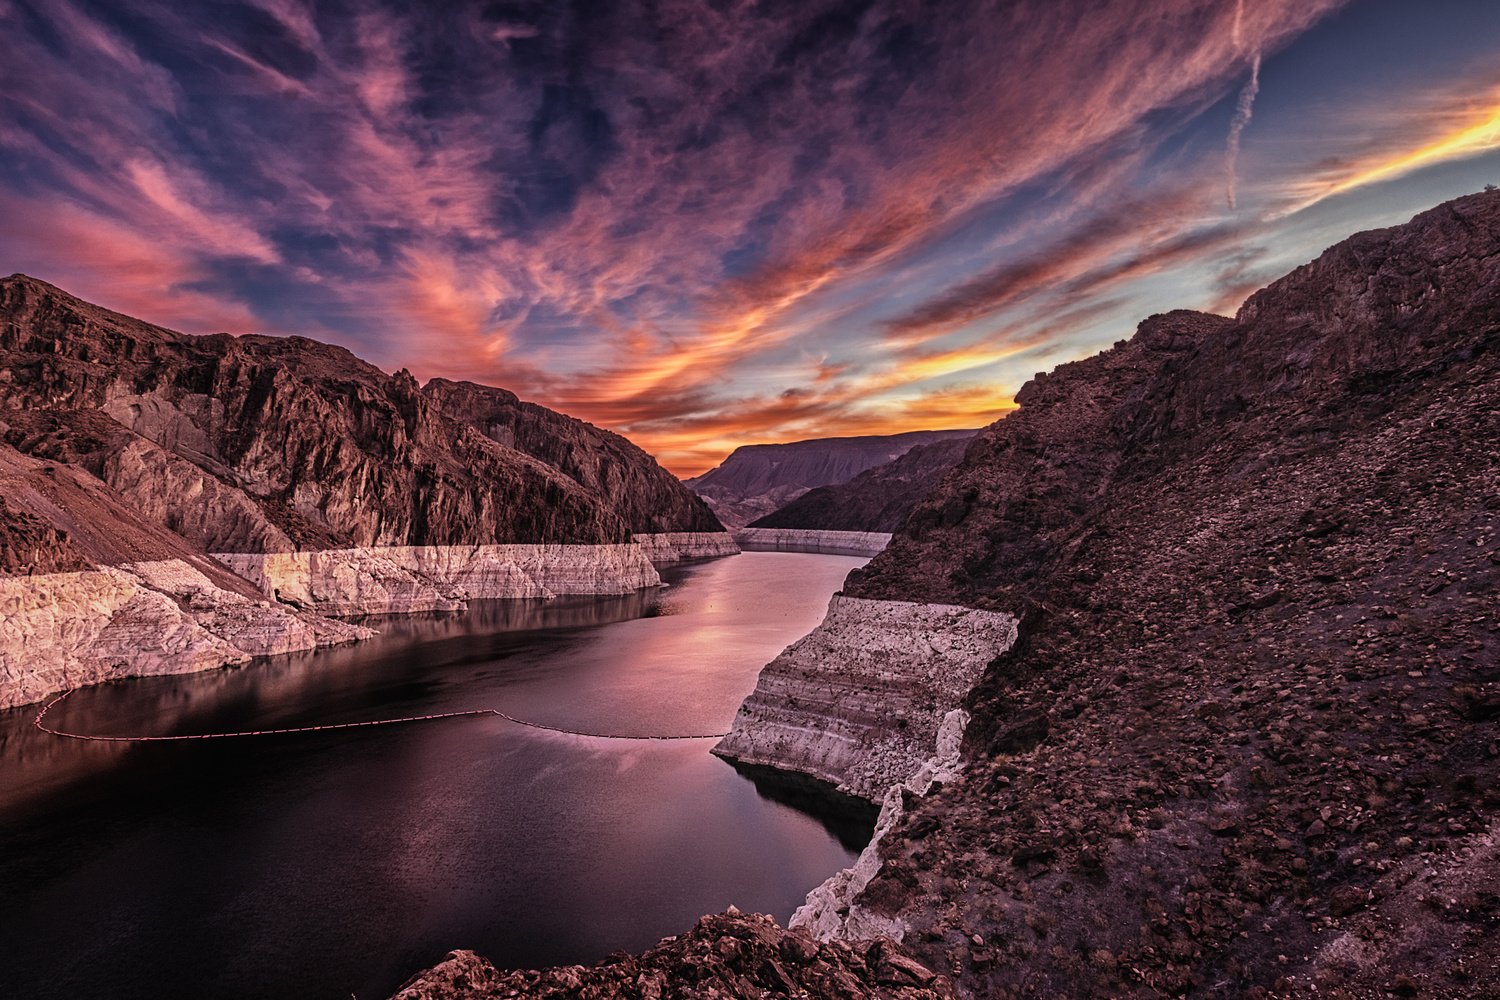 Sunrise above the Hoover Dam by Jim Haas